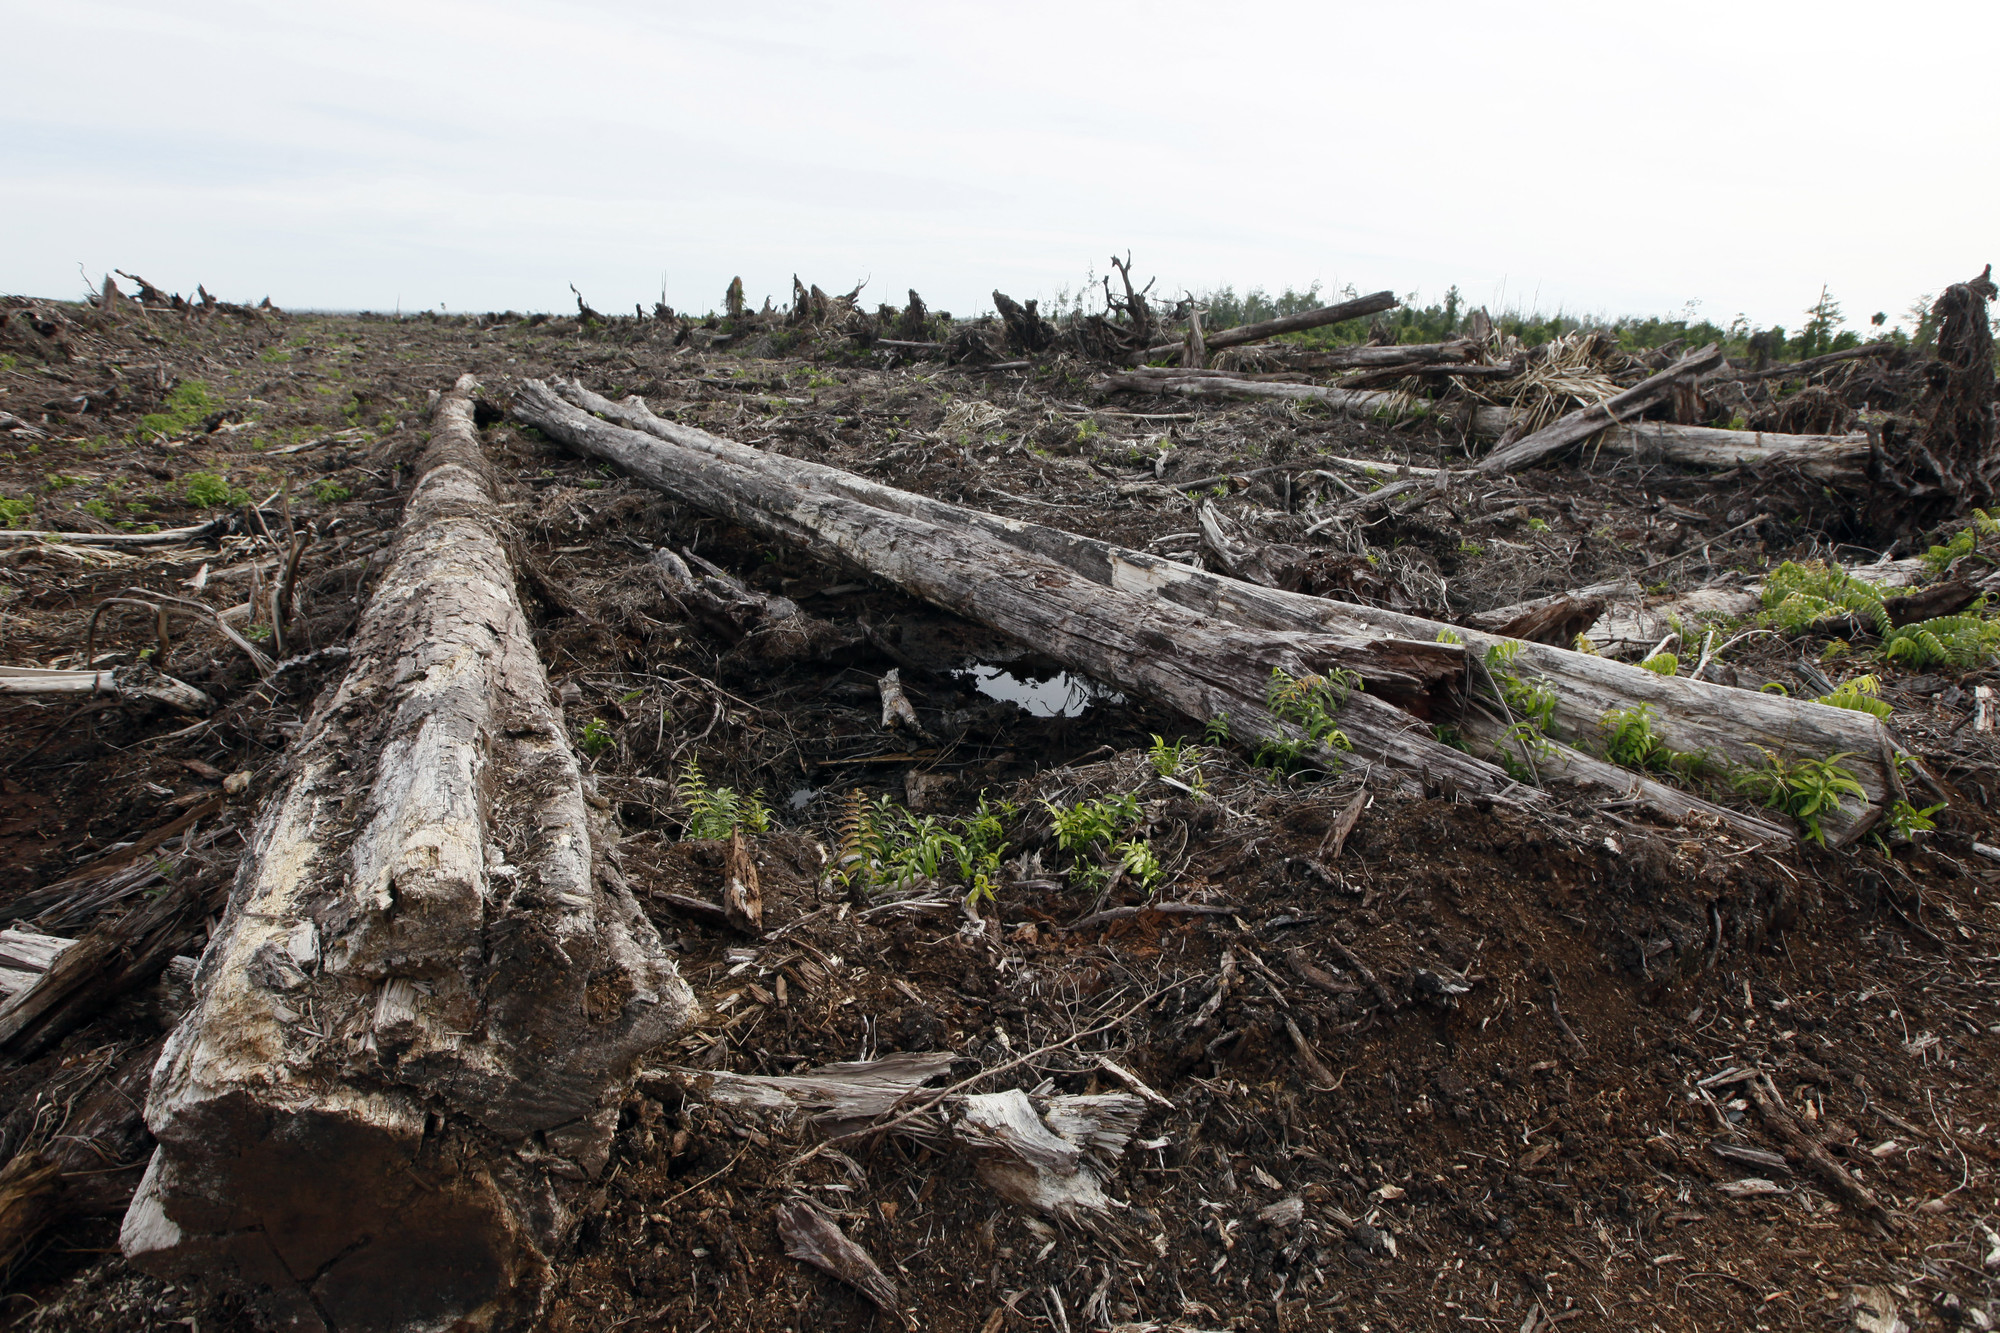 Peatland loss could emit 2,800 years' worth of carbon in an